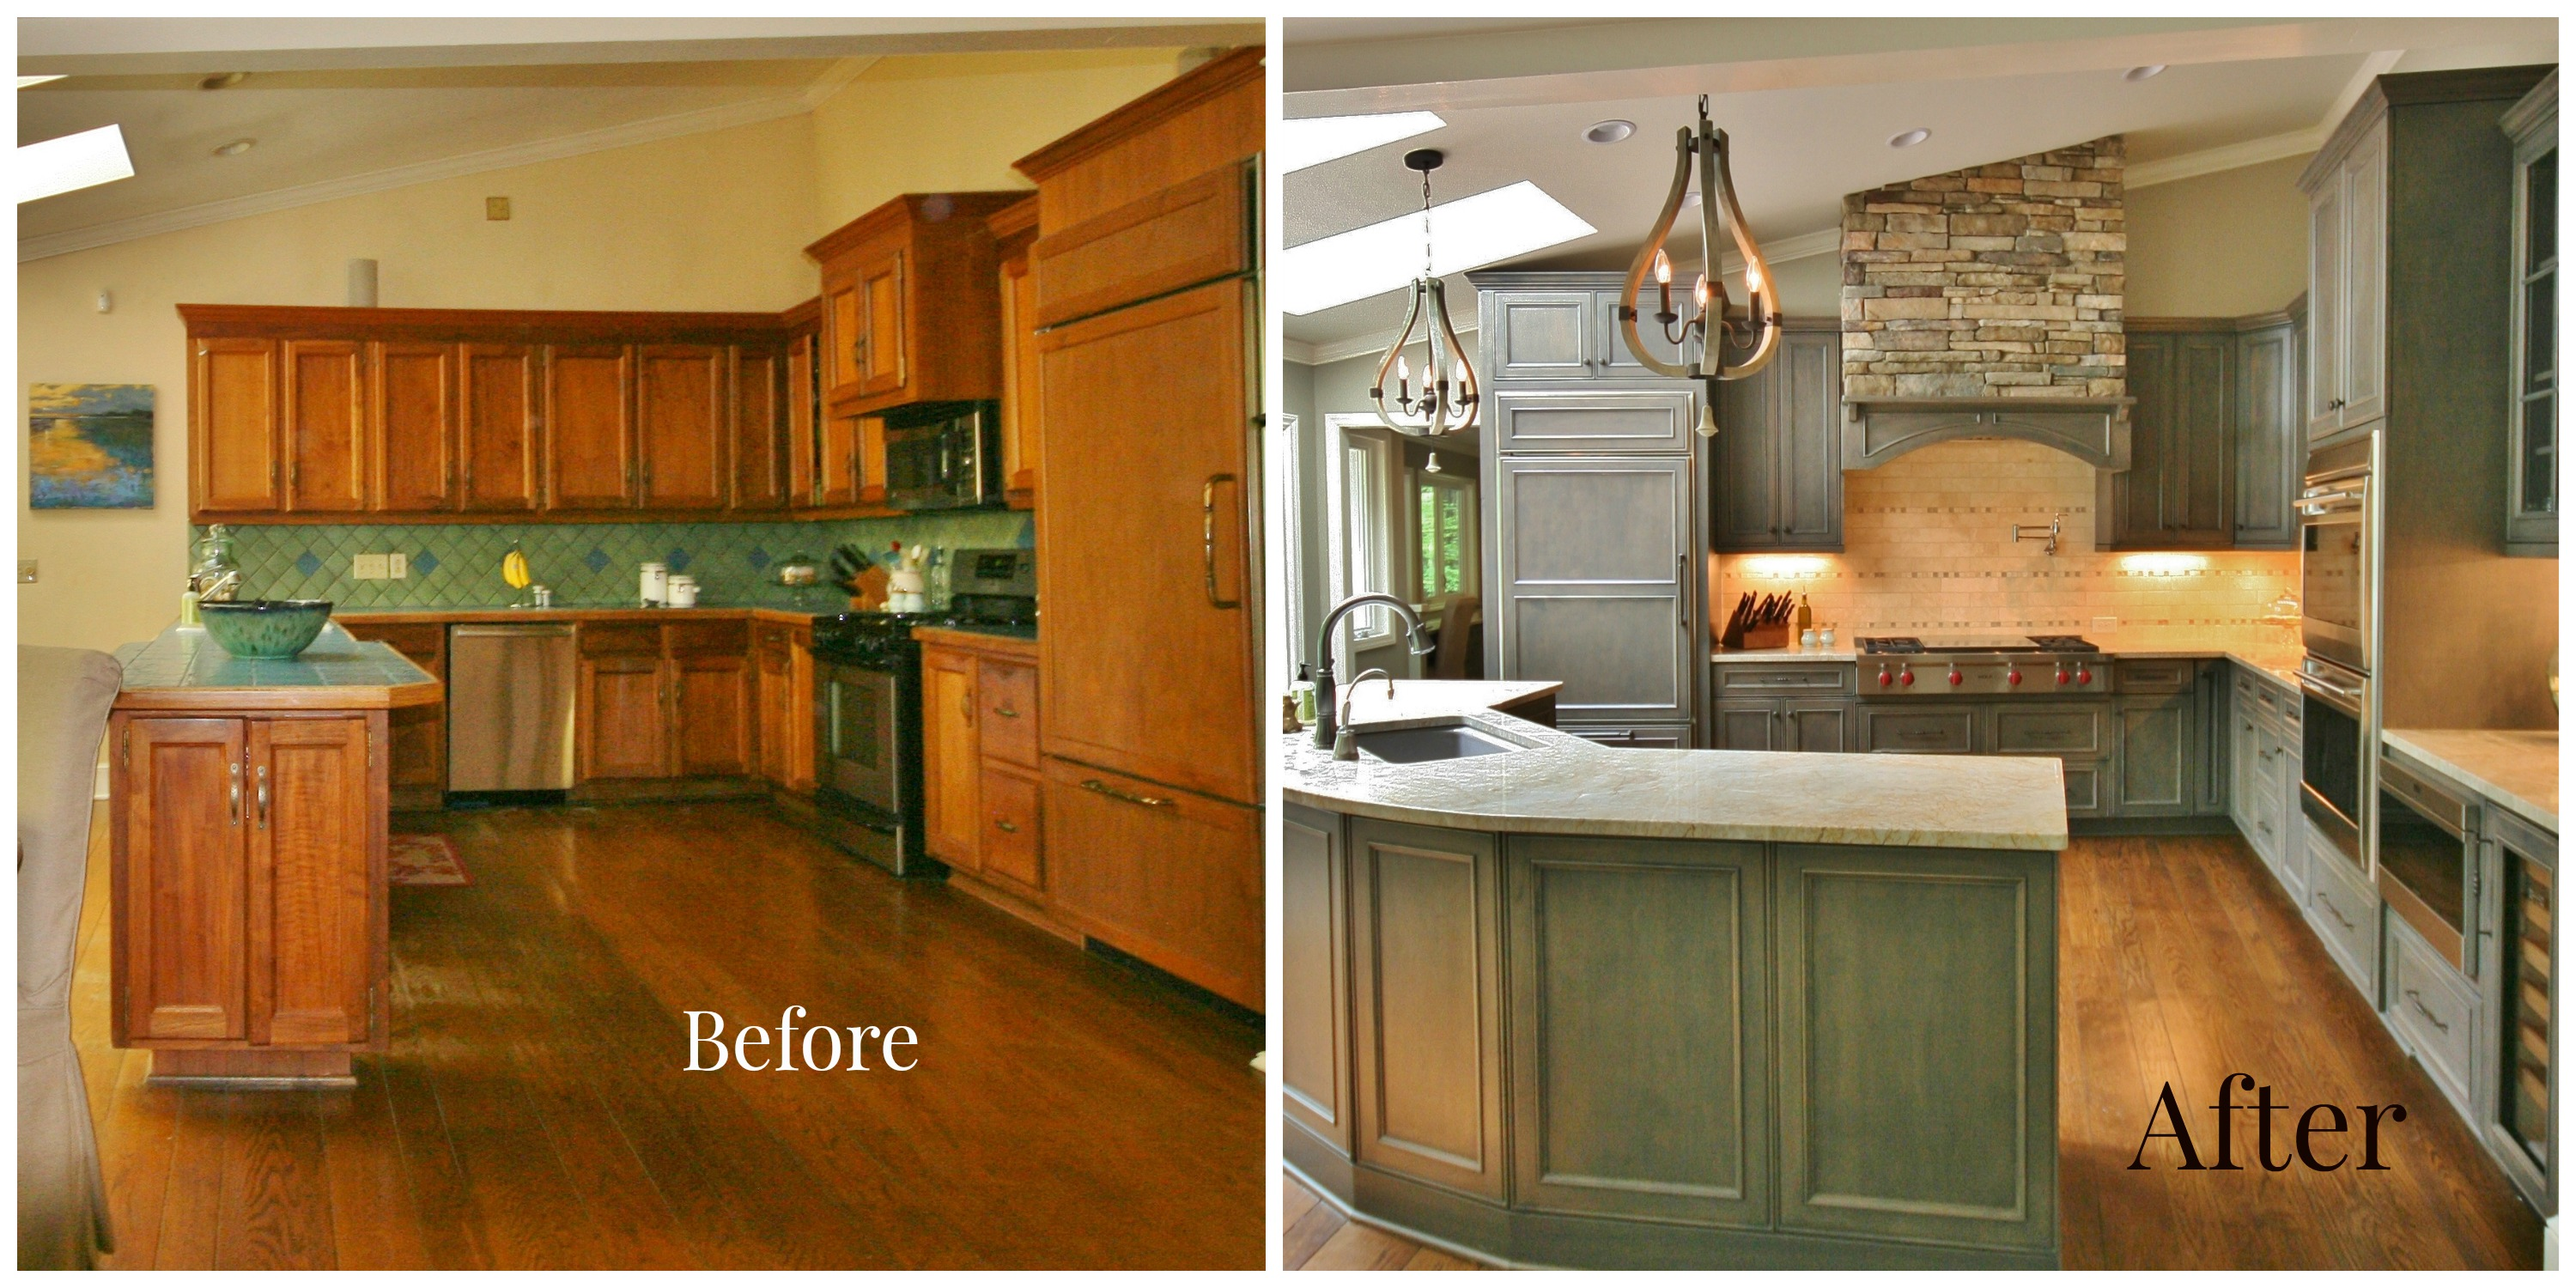 Kitchen Renovations Before And After With Turqouise Cabinets With Granite  Countertop Plus Tile Back Splashes And